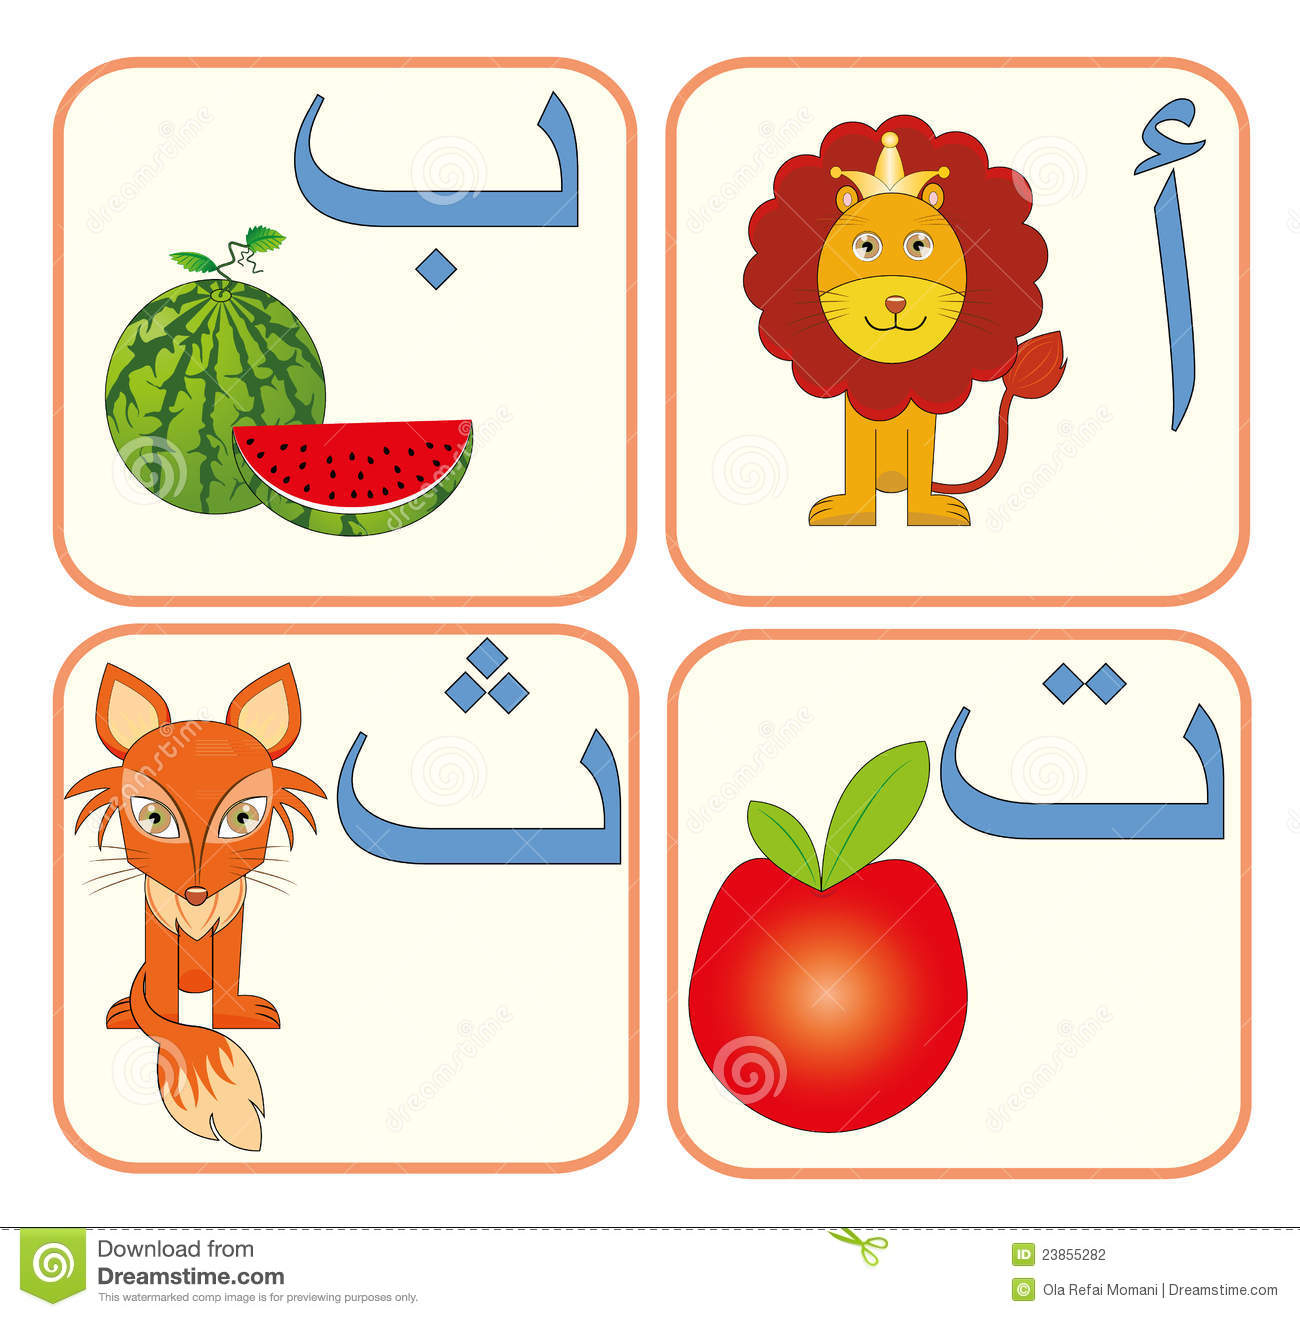 Alphabet animals arabic cute fruit kids letter